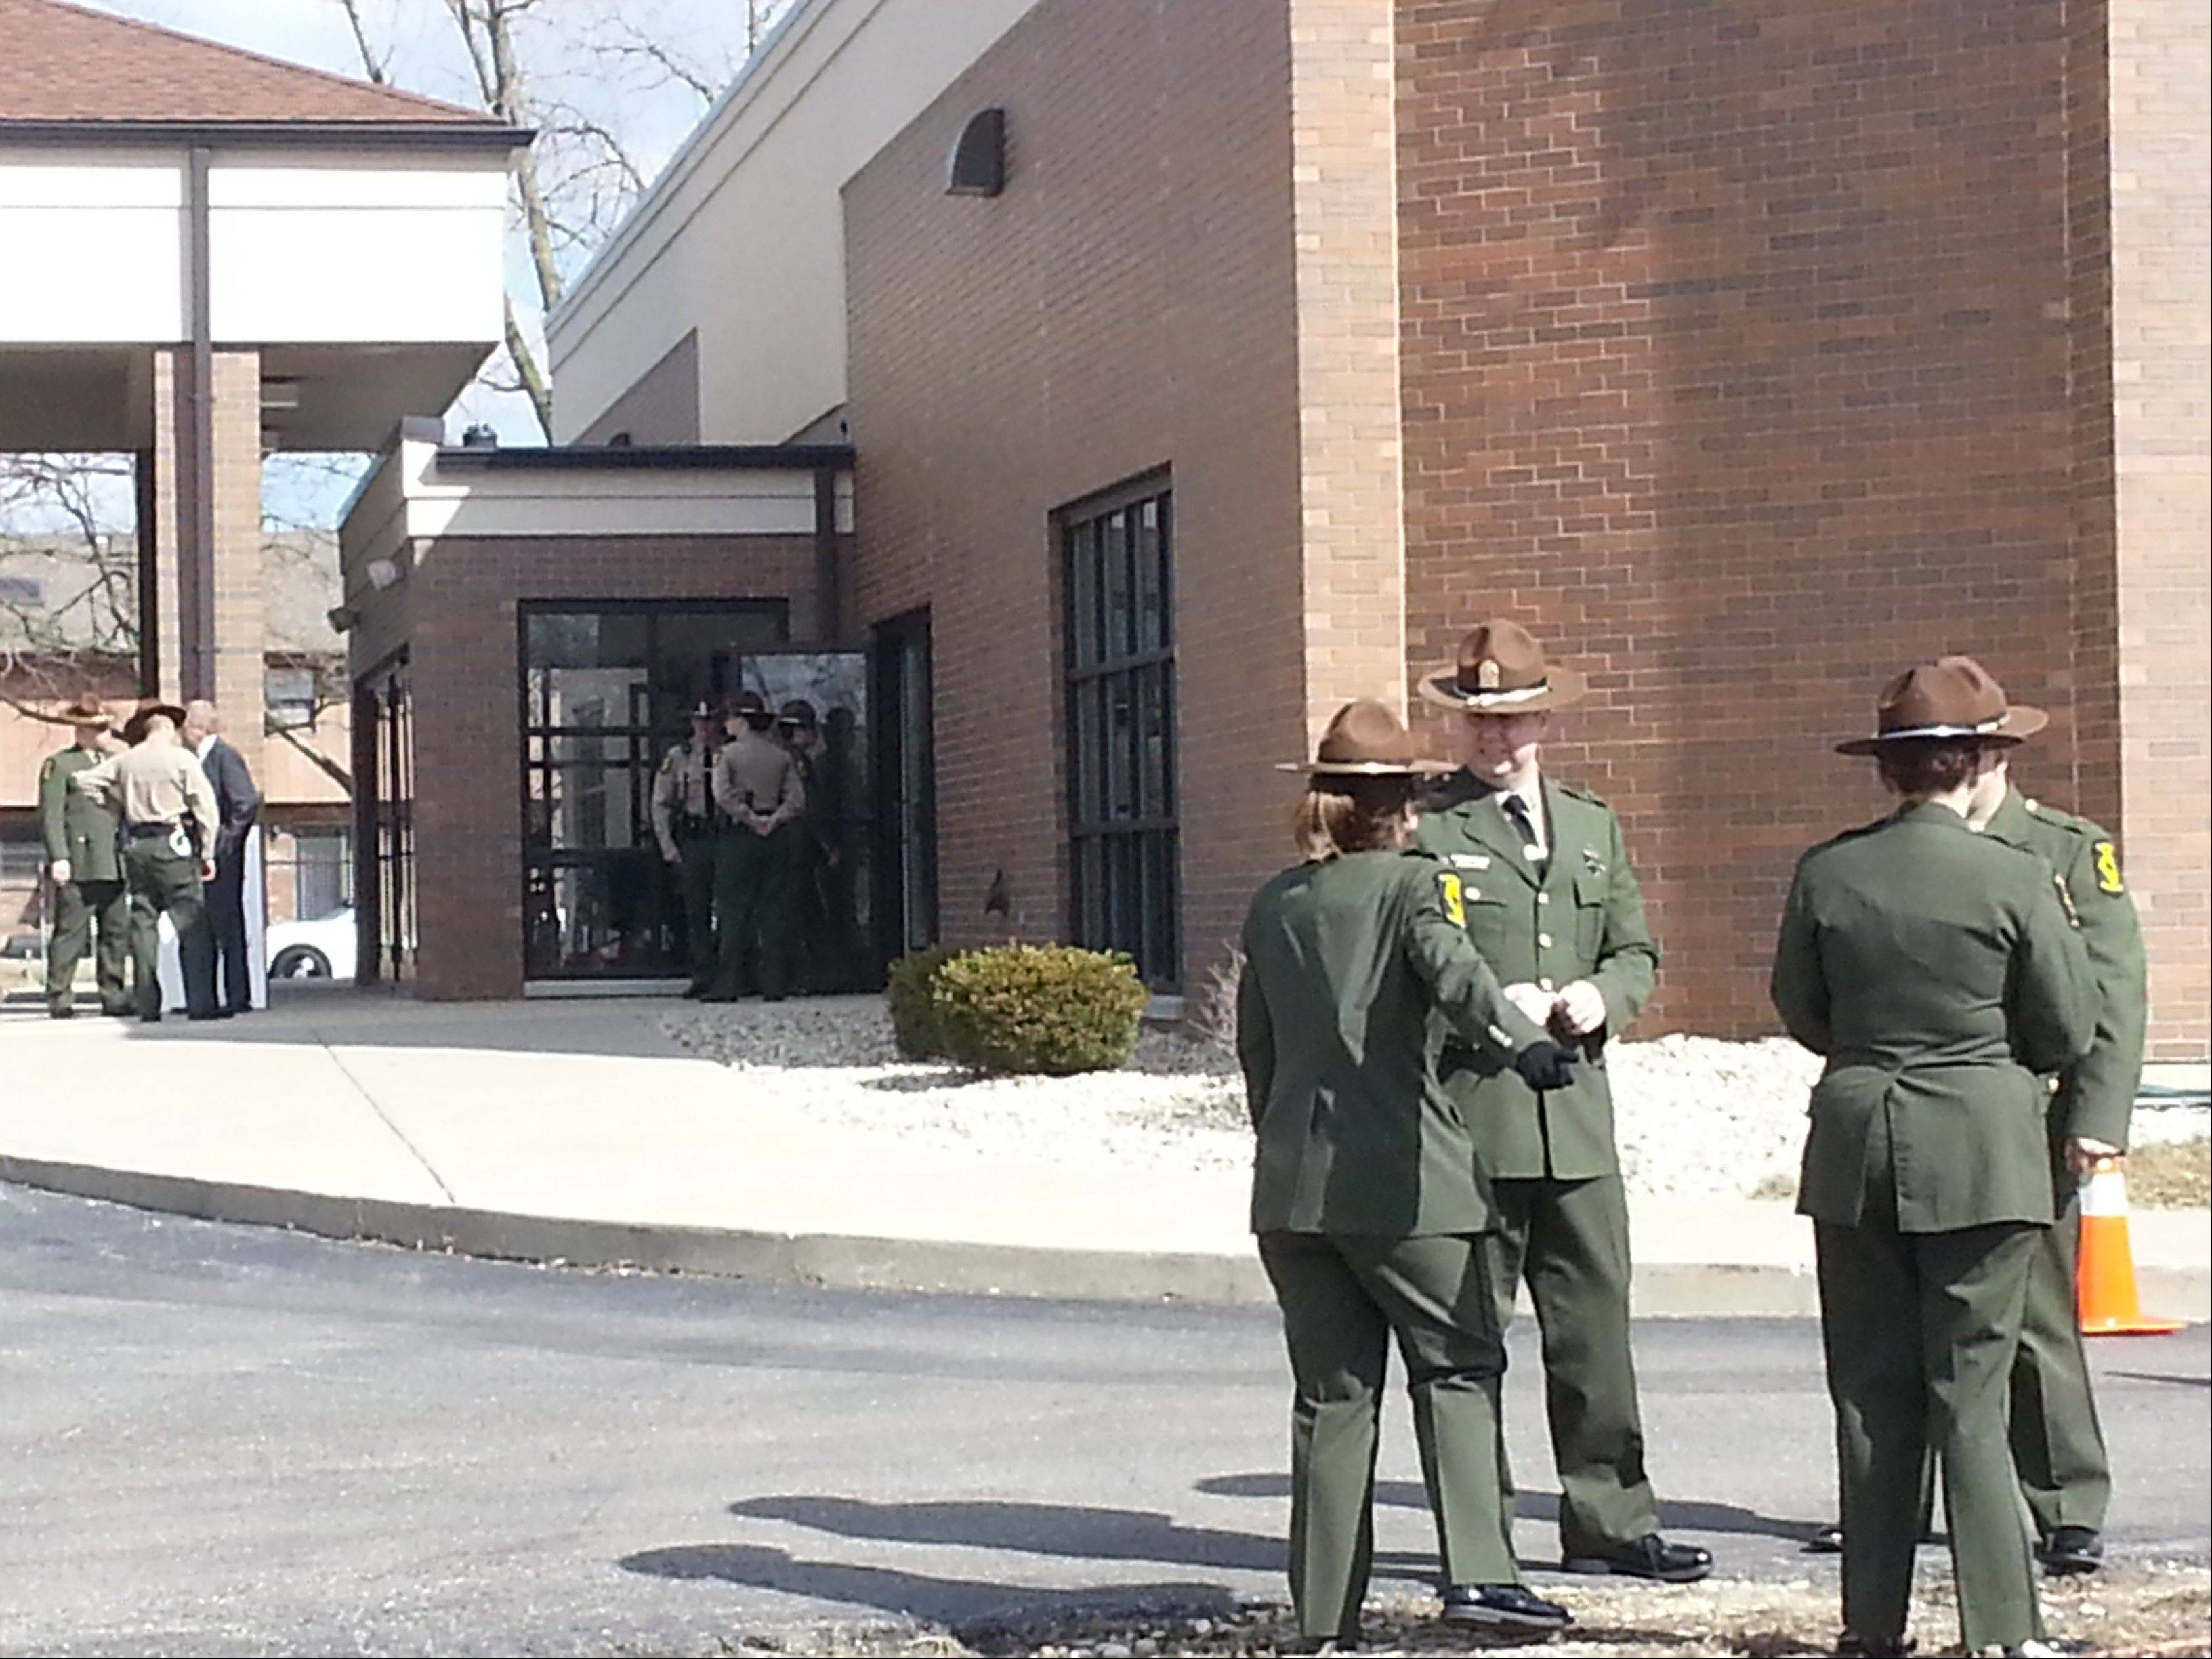 Illinois State Police stand outside Moraine Valley Church in Palos Heights Monday while attending a visitation for 28-year-old Illinois State Police trooper James Sauter, who was killed on duty last week.